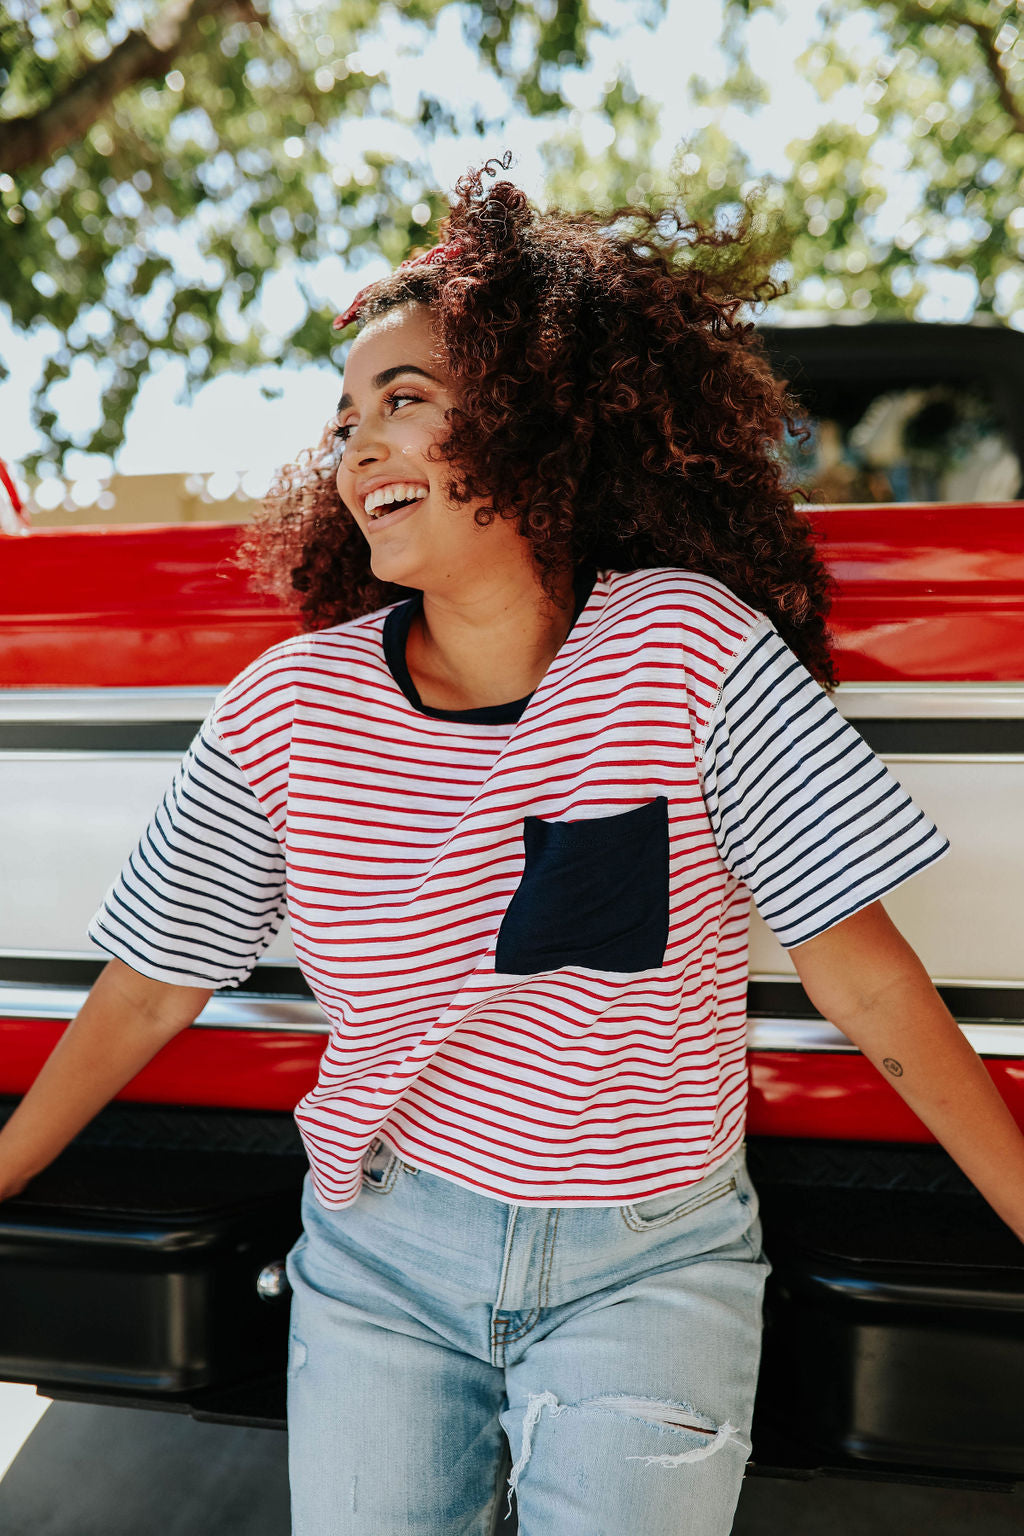 THE CROPPED TOP IN NAVY AND RED STRIPE